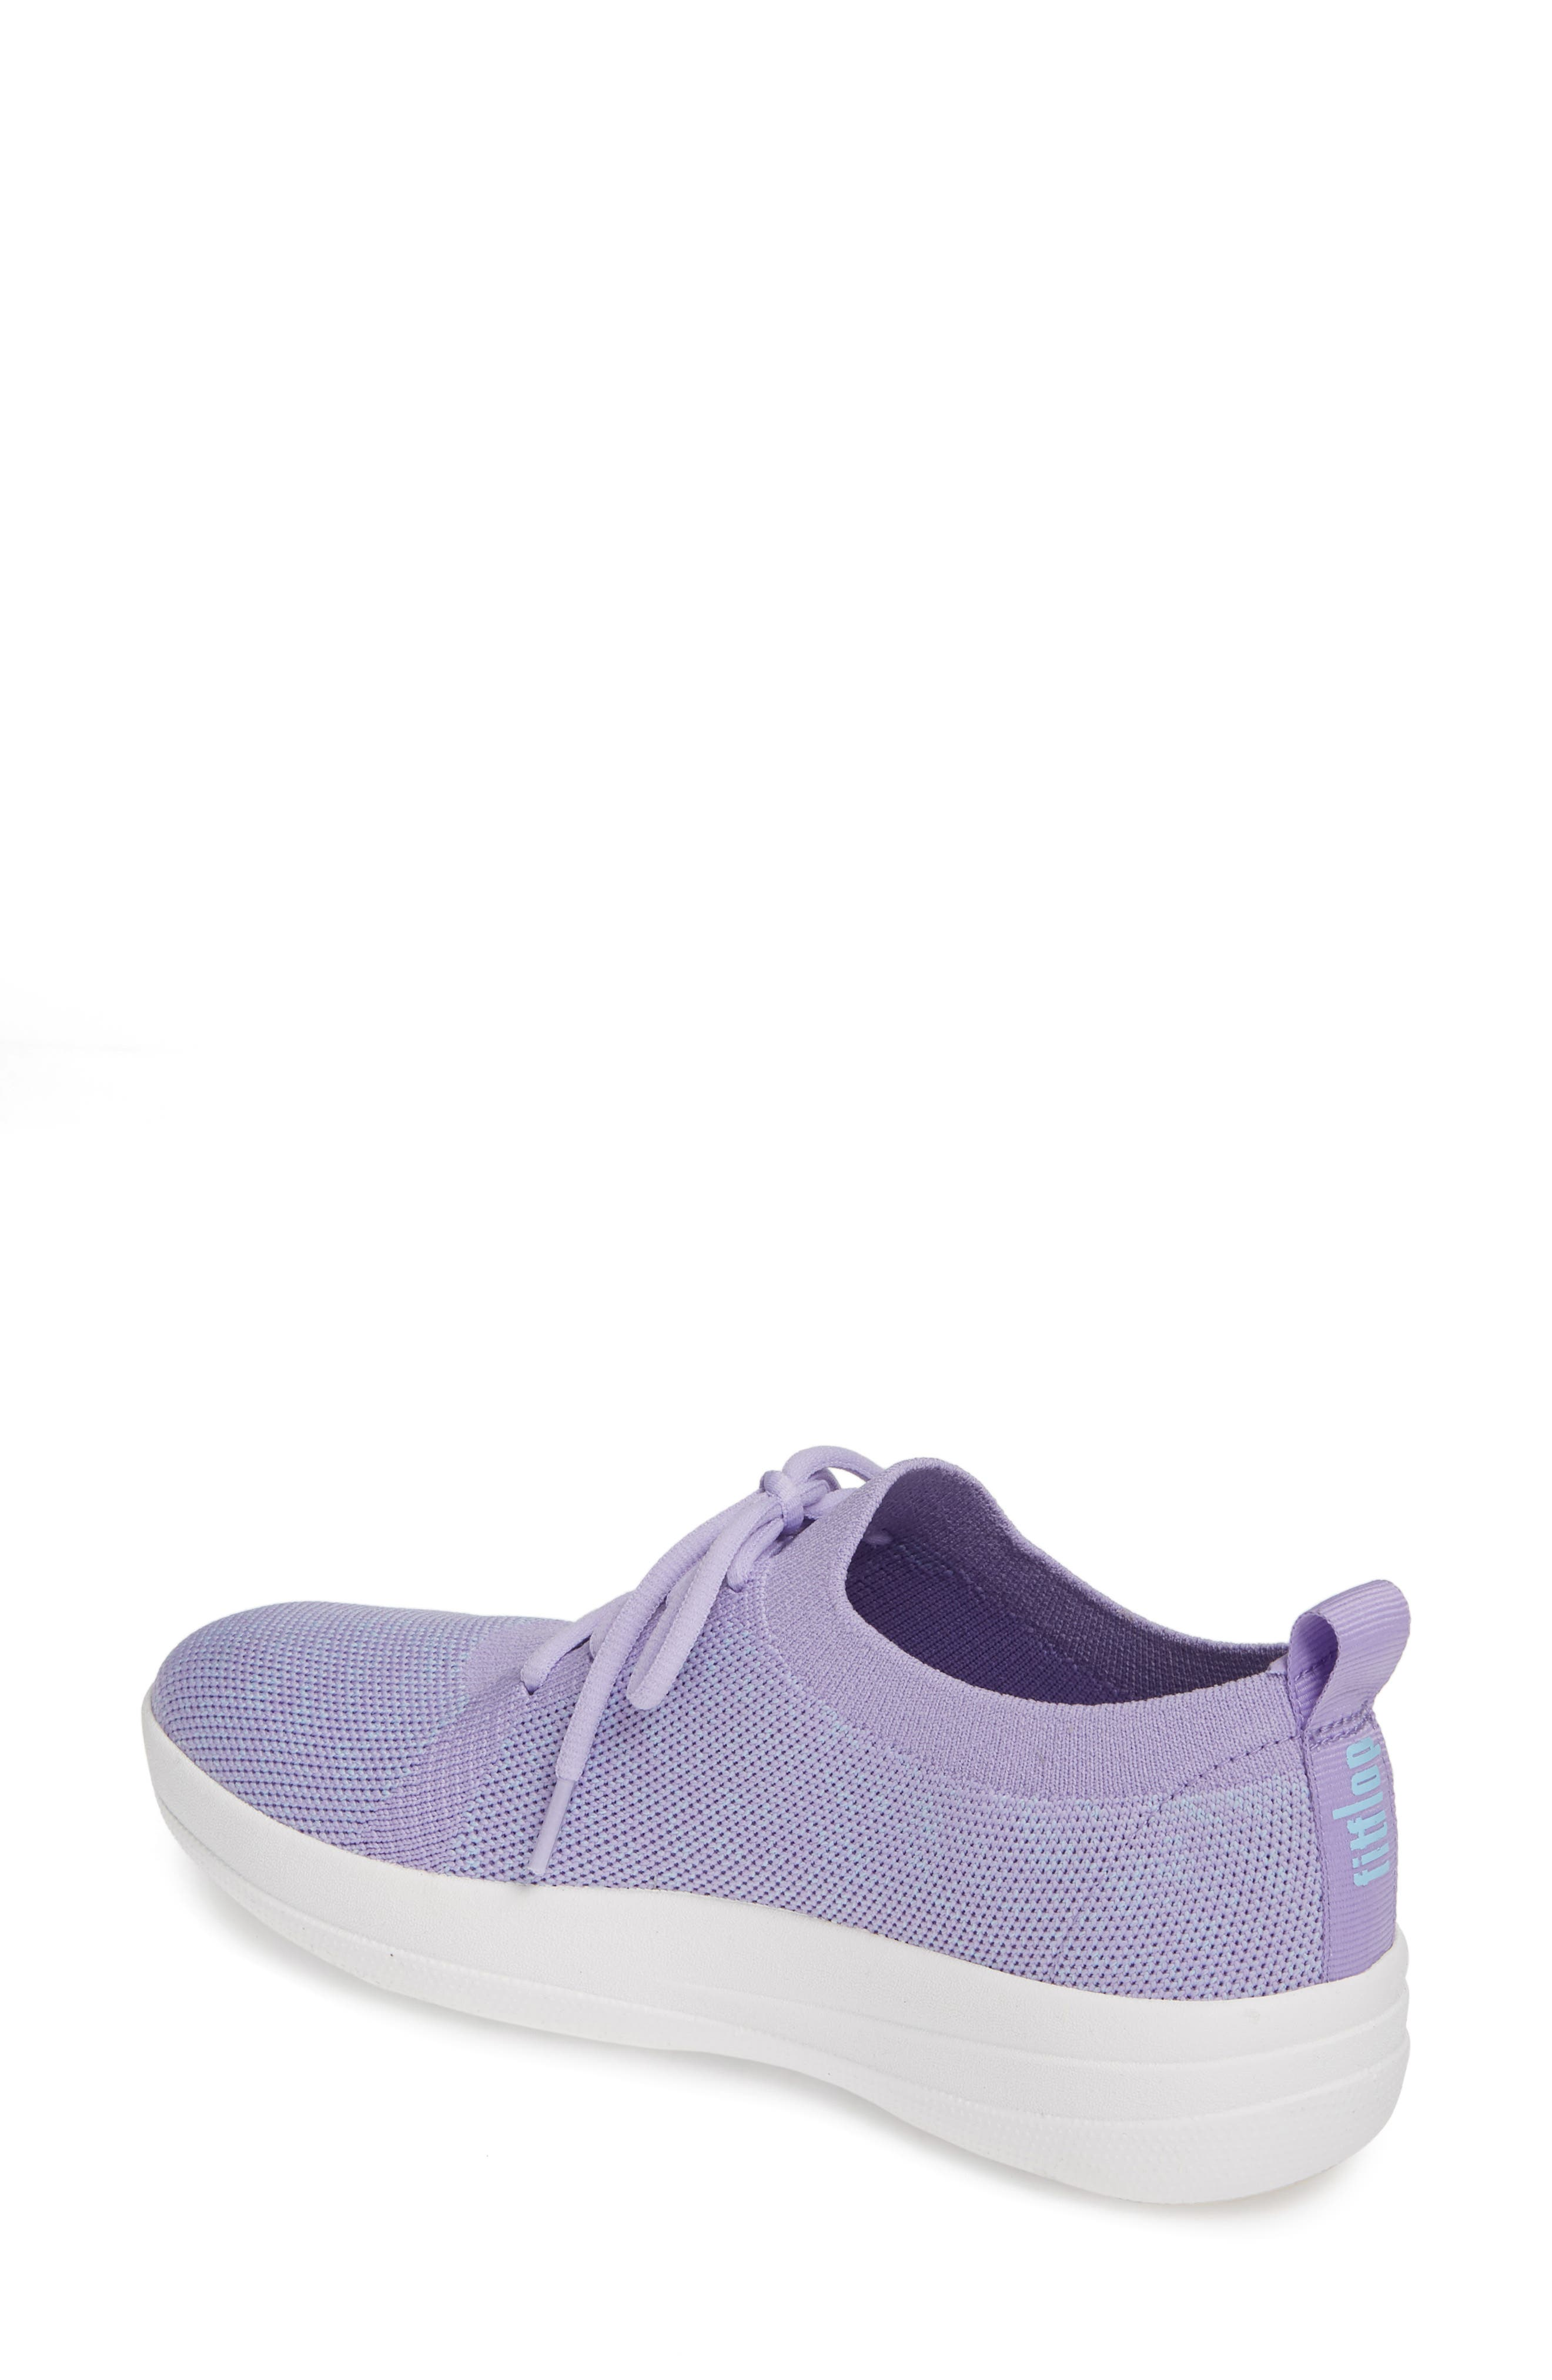 F-Sporty Uberknit<sup>™</sup> Sneaker,                             Alternate thumbnail 2, color,                             FROSTED LAVENDER MIX